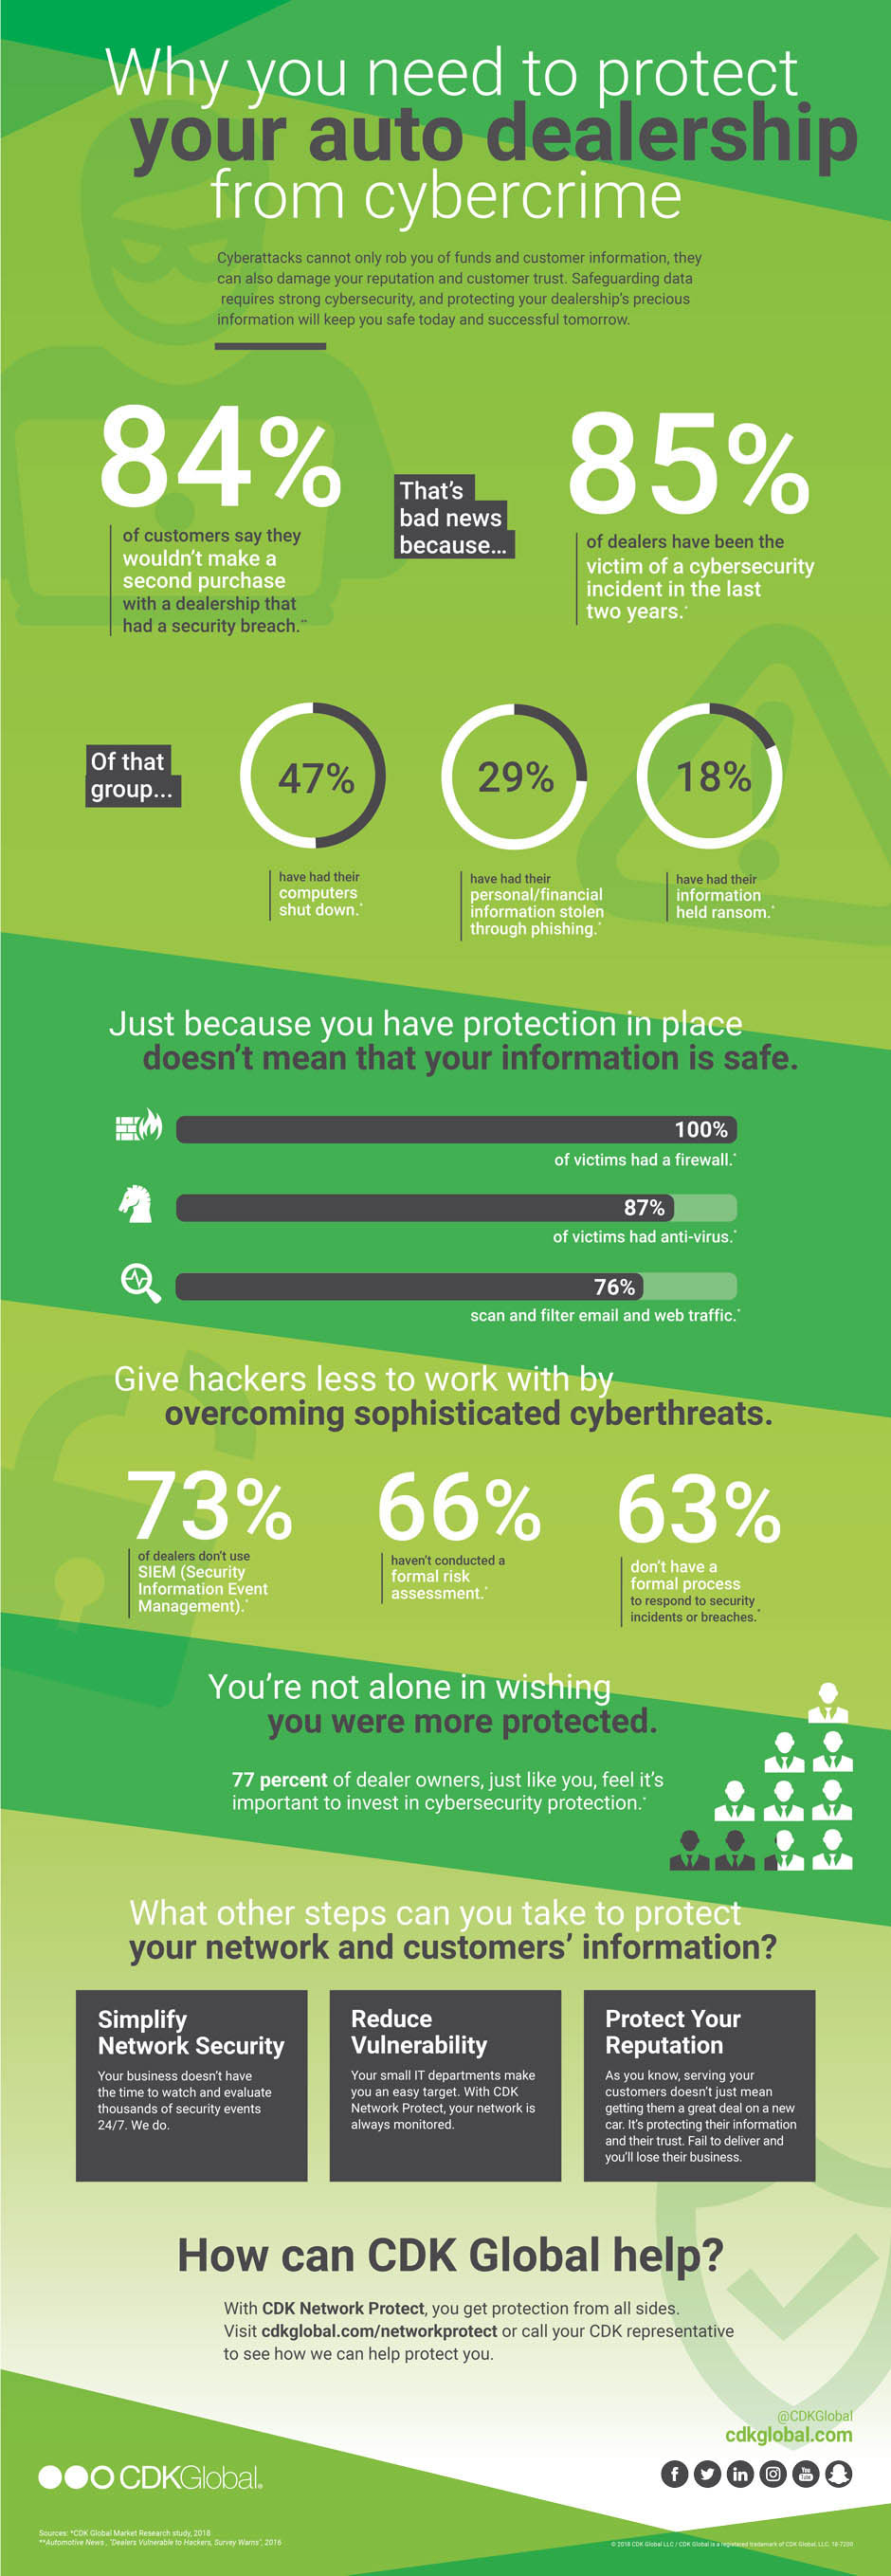 18-7200-Network-Security-Infographic-final.jpg